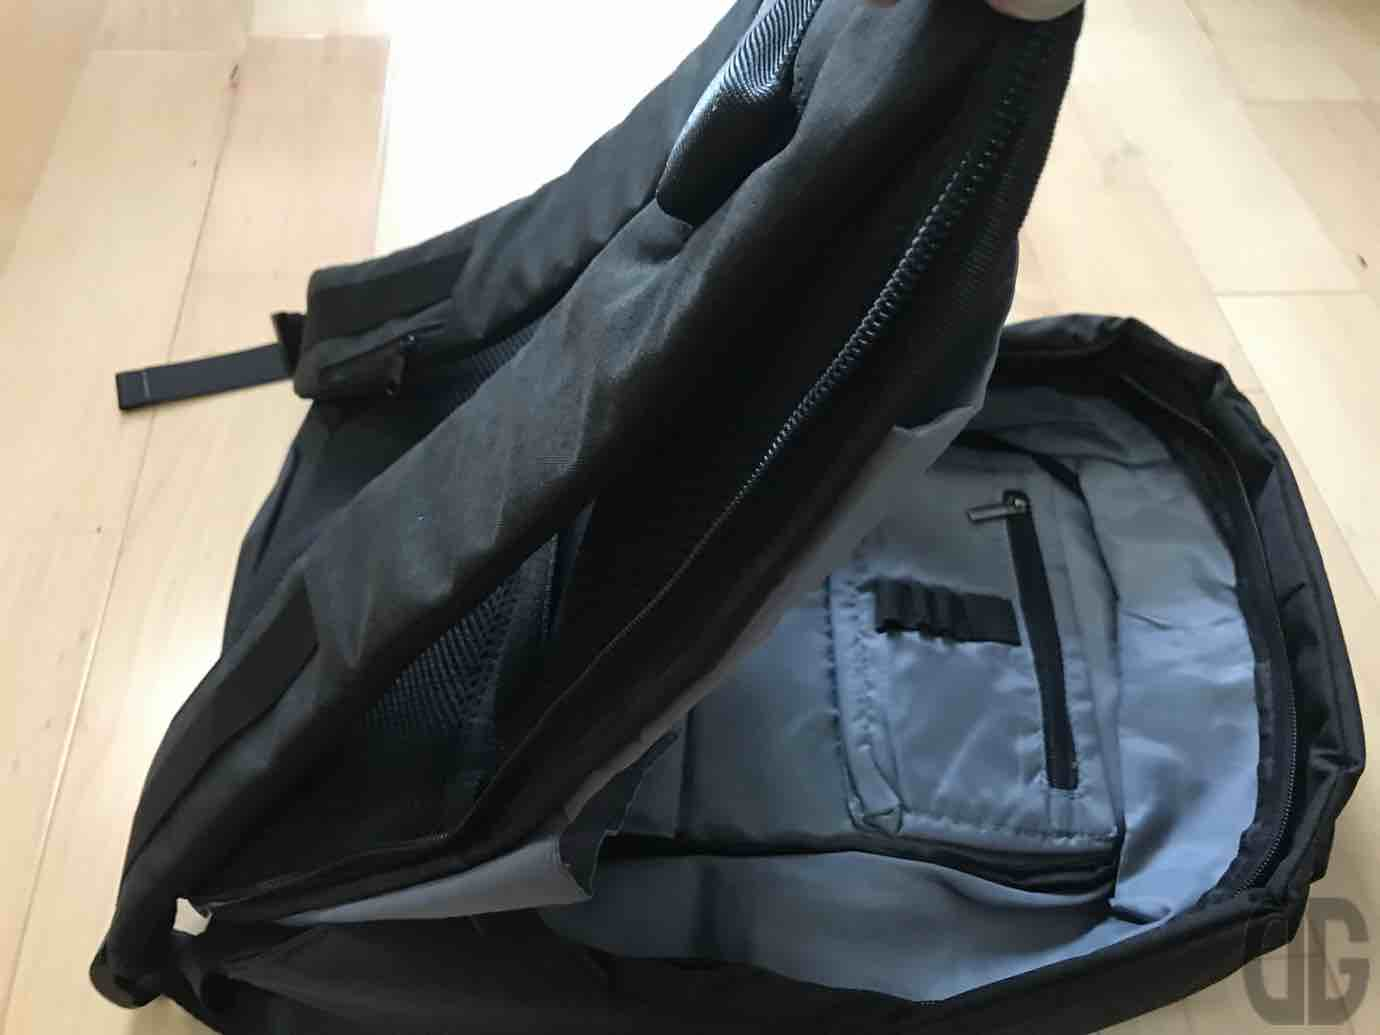 Giz Modernのリュック The Most Functional Backpack for Commuters を買ってみた!ガジェッターには嬉しい小物入れがたくさん!!